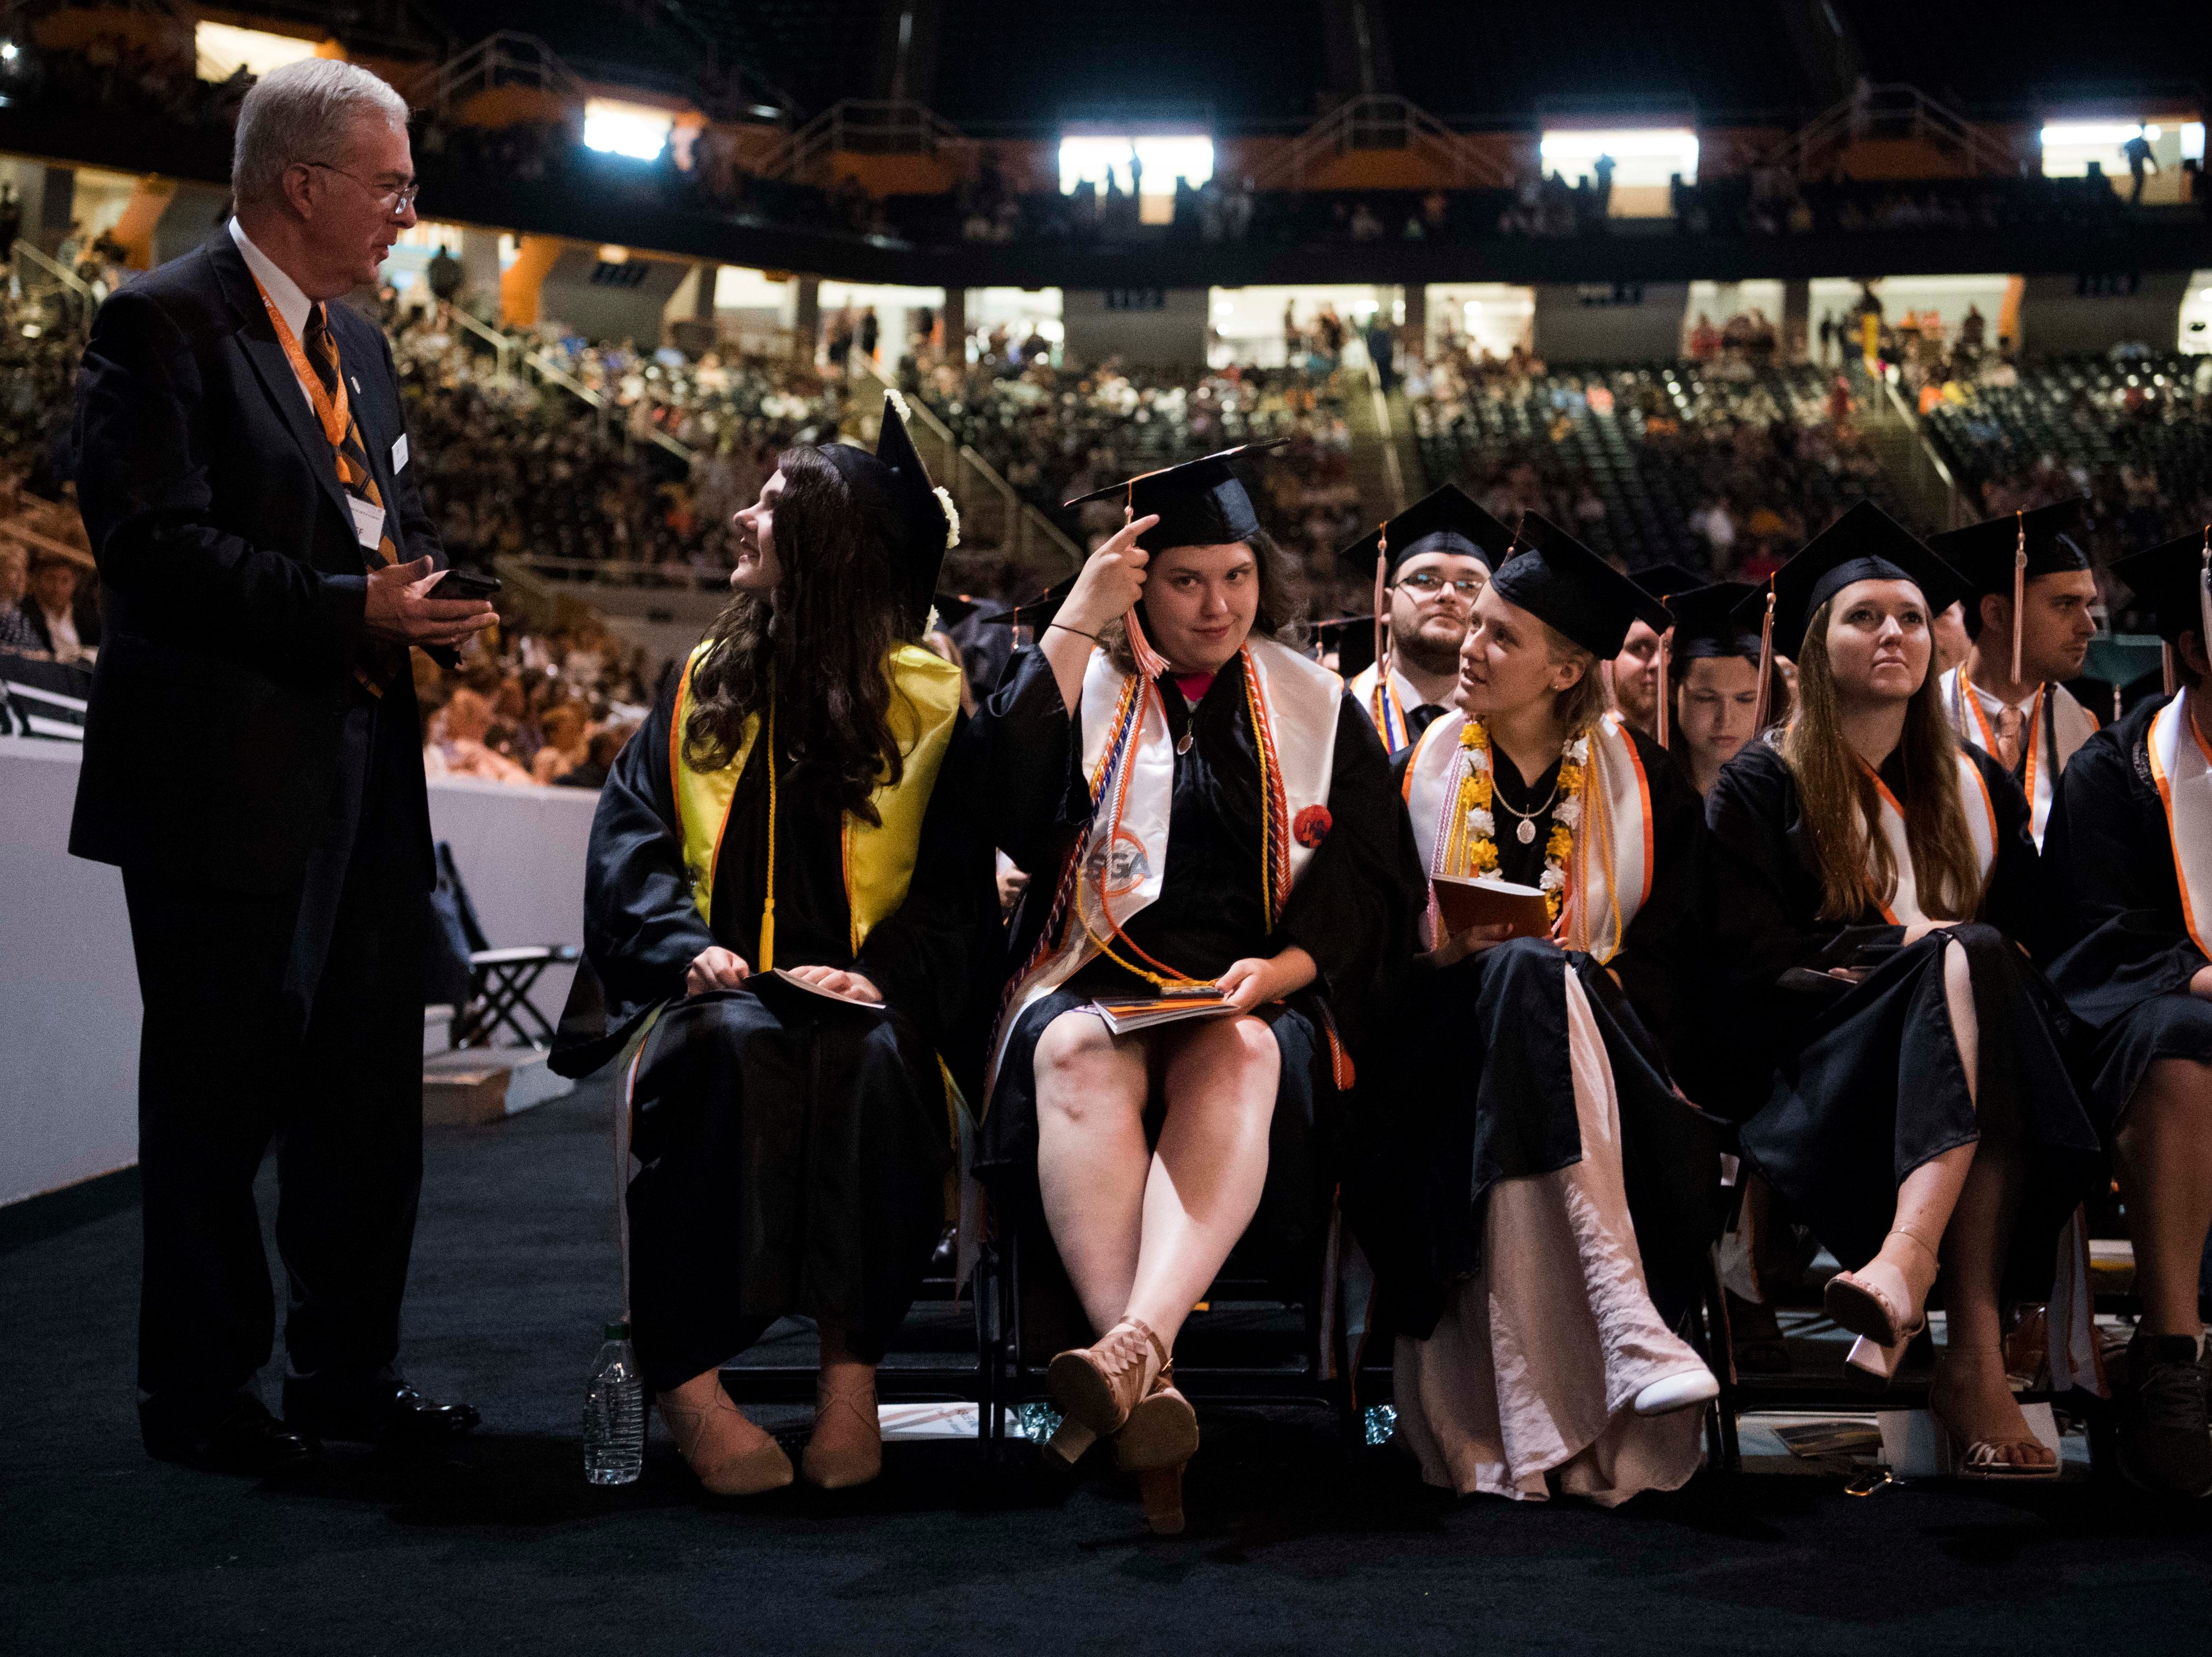 Students wait before the University of Tennessee's College of Arts and Sciences commencement in Thompson-Boling arena in Knoxville, Saturday, May 11, 2019.